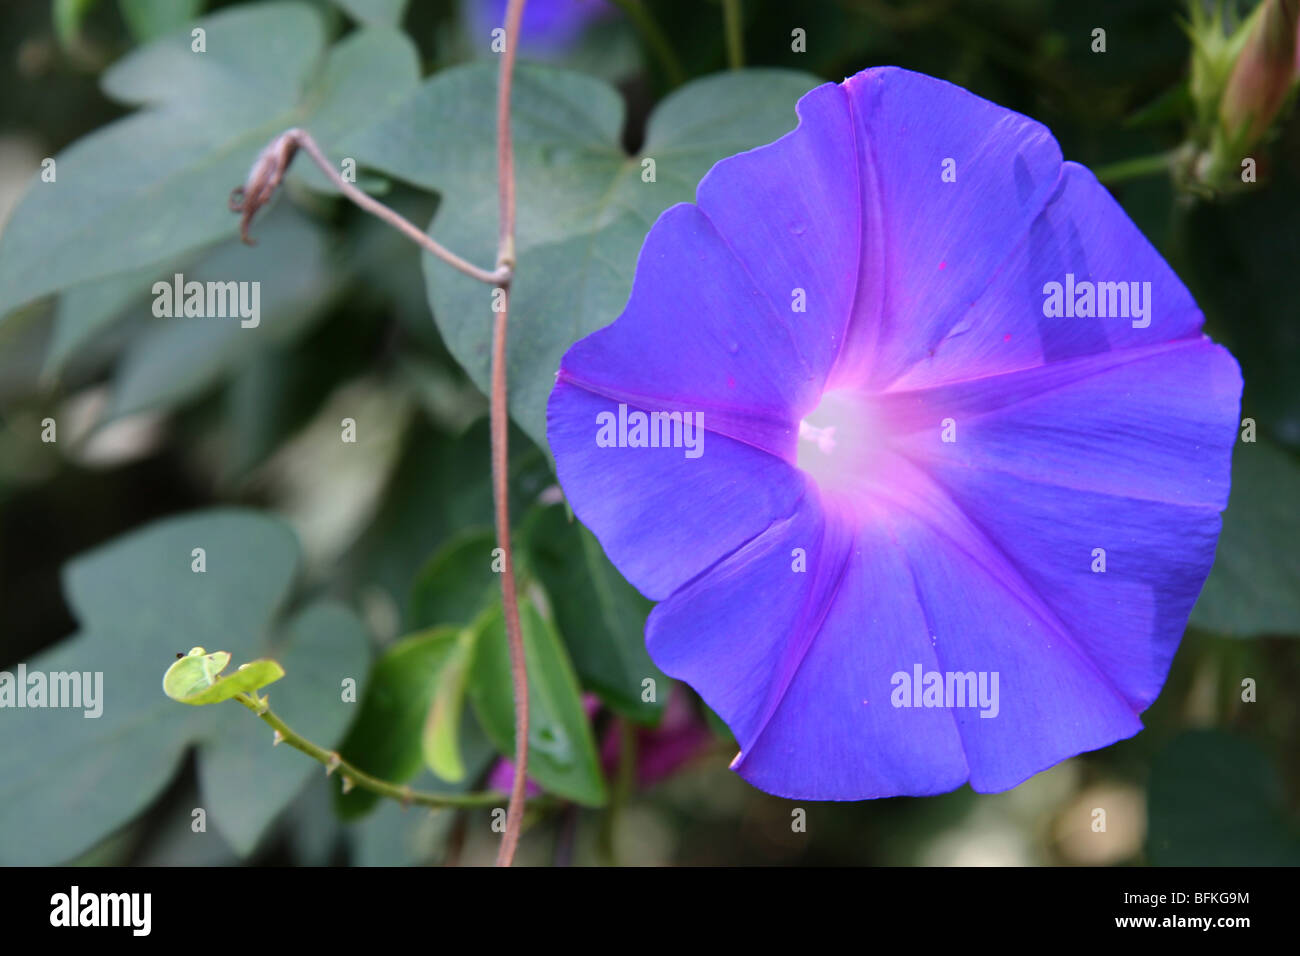 A bell shaped blue dawn glory flower in the wayanad district of a bell shaped blue dawn glory flower in the wayanad district of kerala in india izmirmasajfo Choice Image